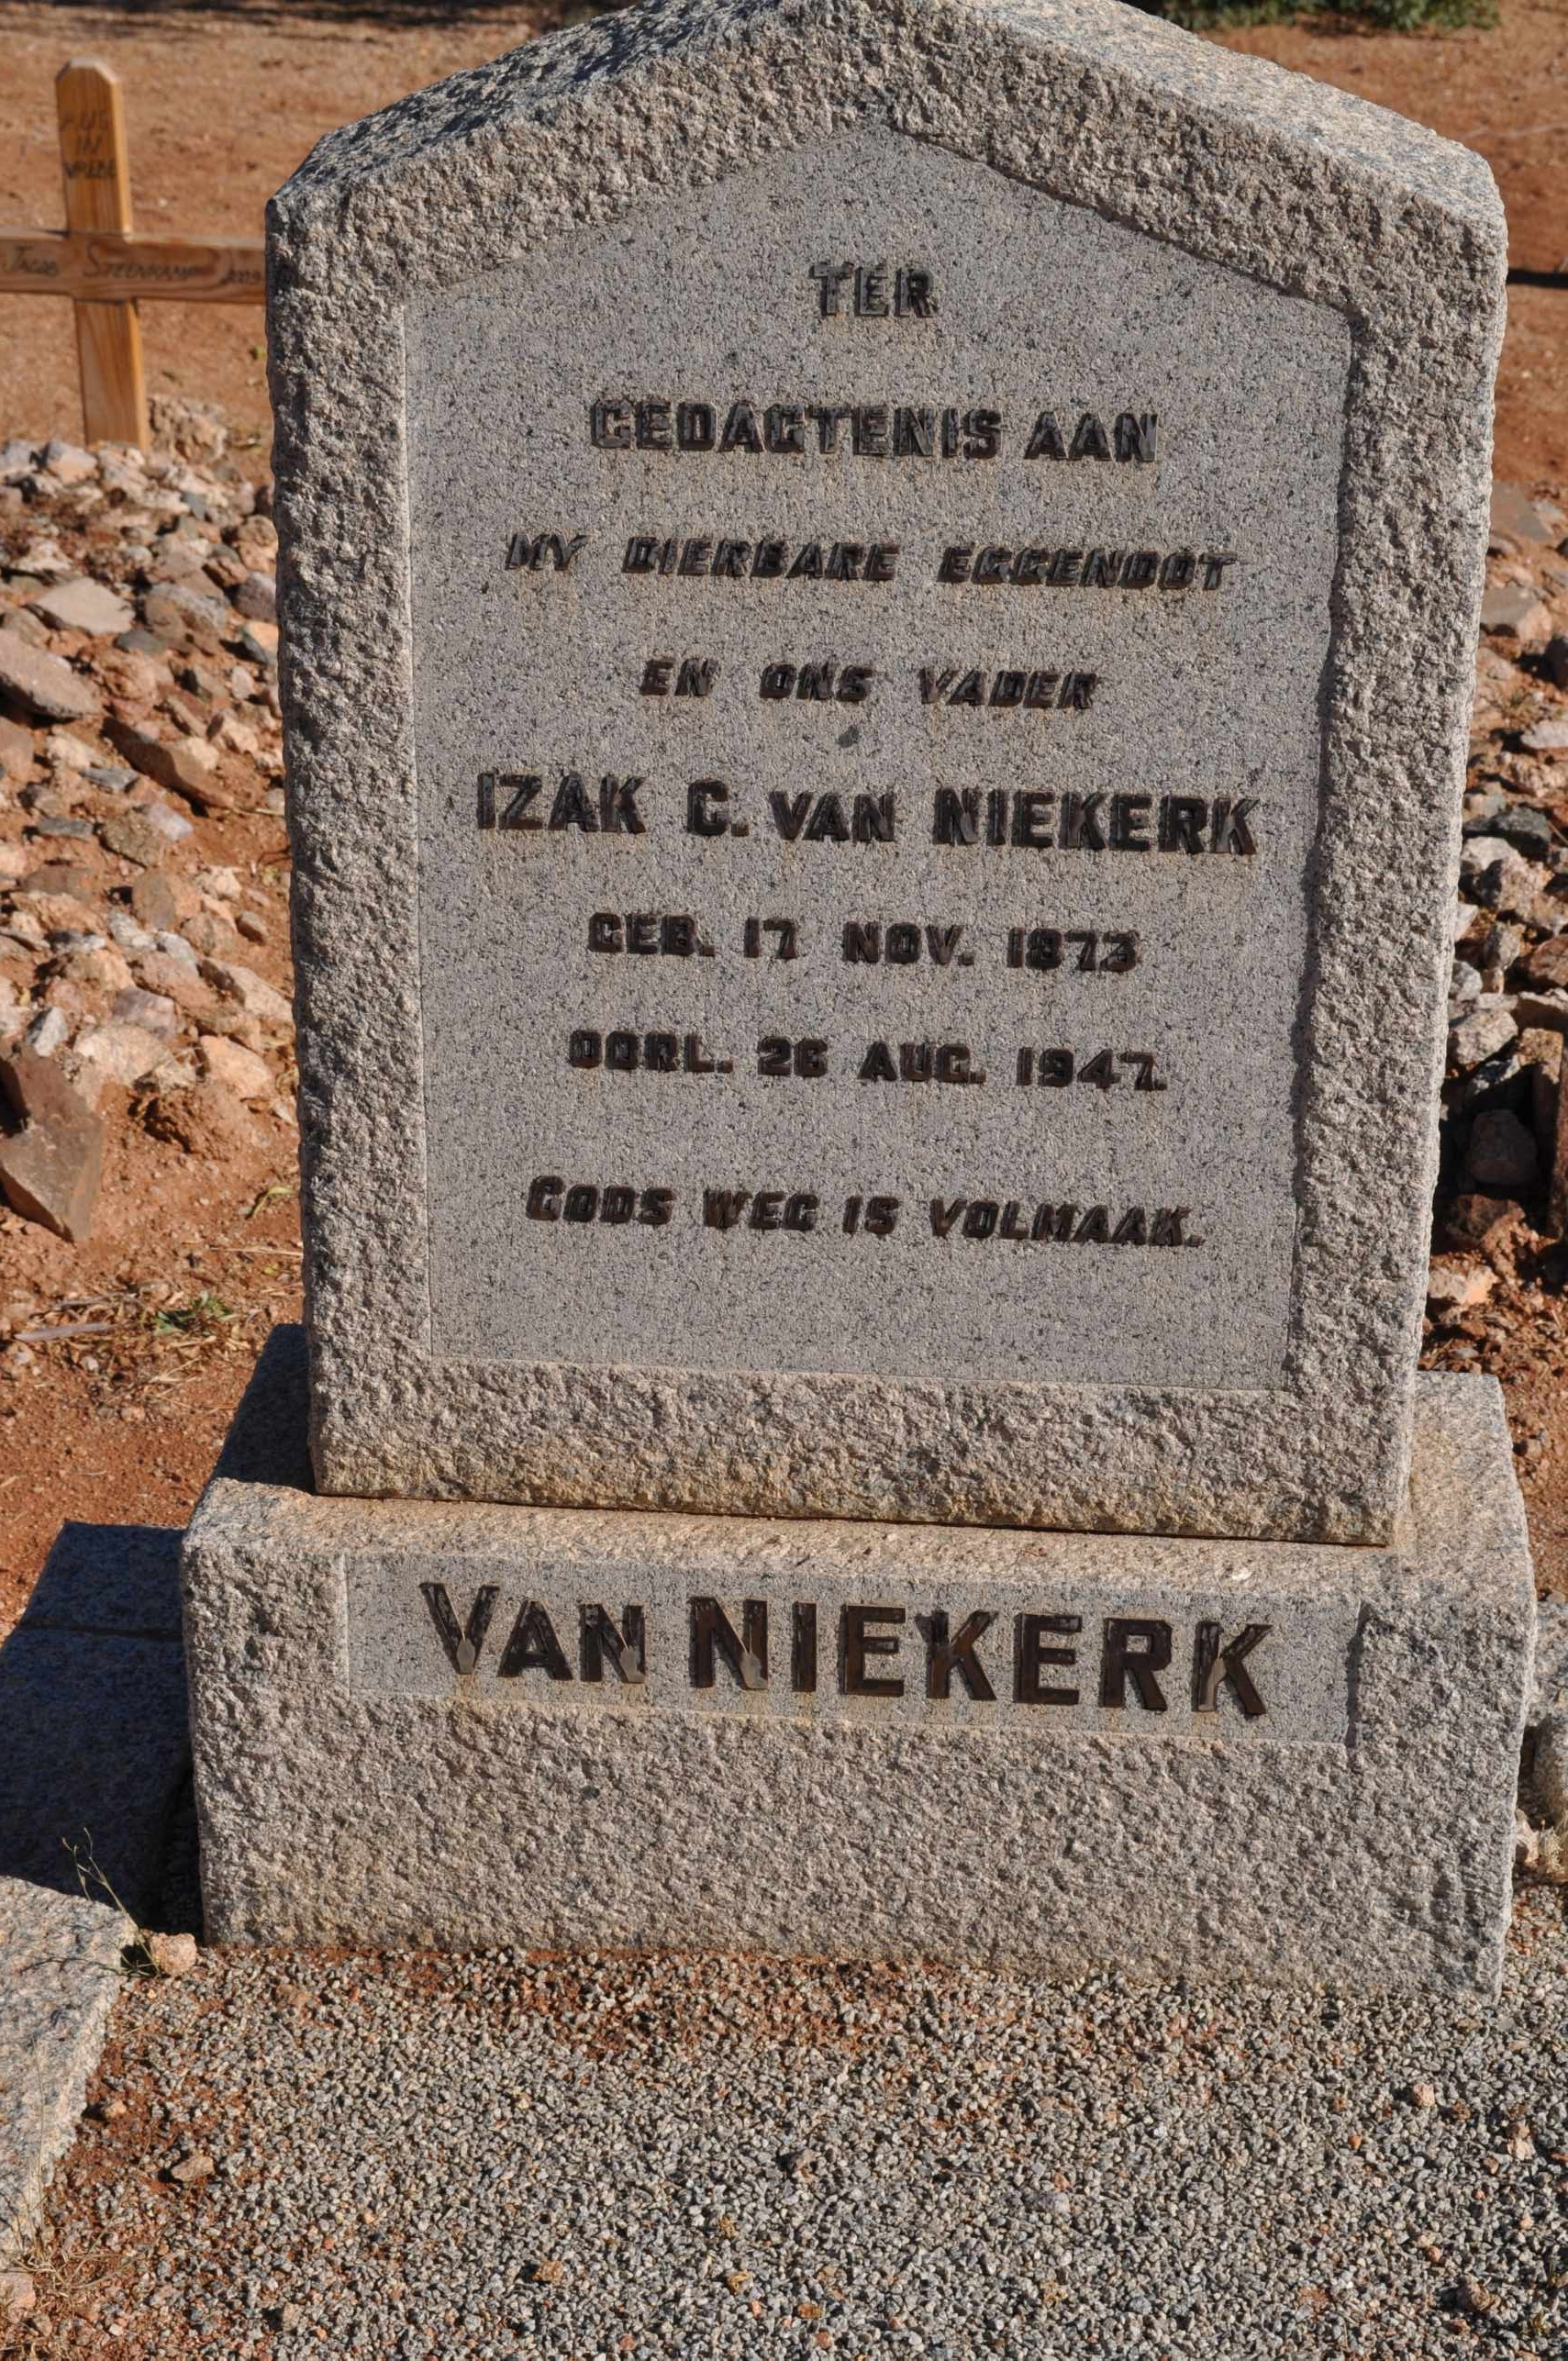 Van Niekerk, Izak C born 17 November 1873 died 26 August 1947